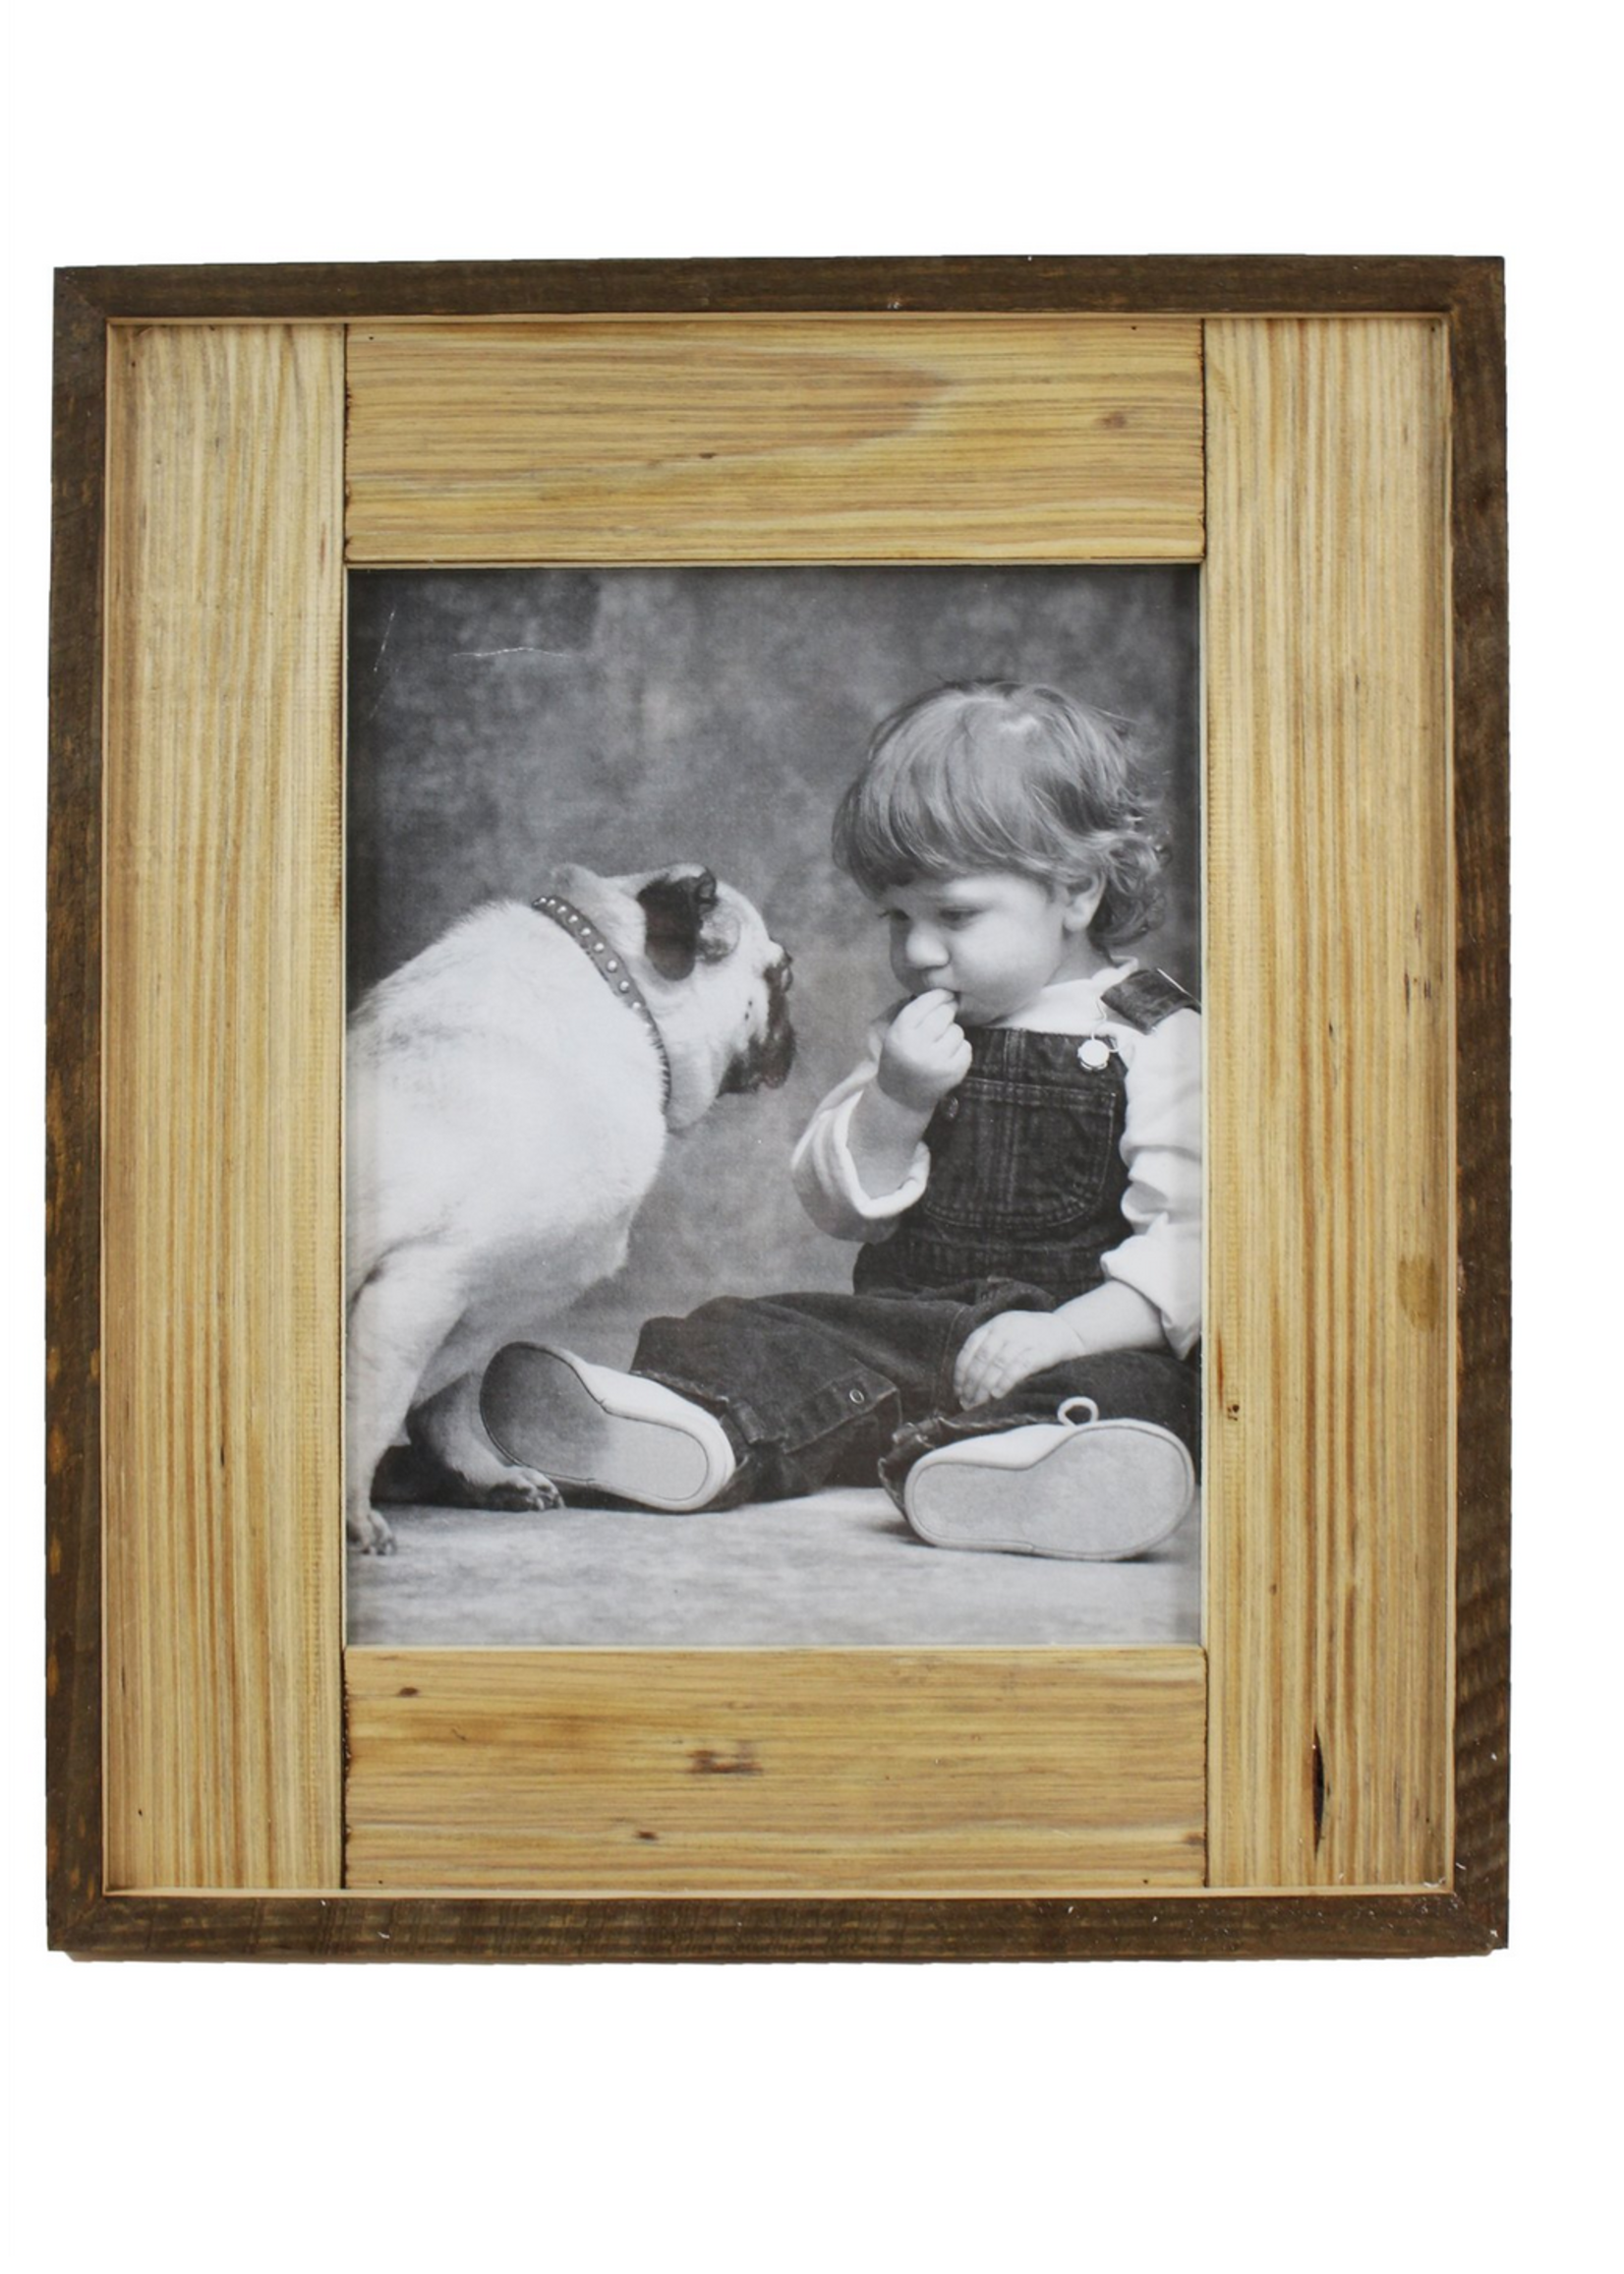 Thick wood frame 8x10